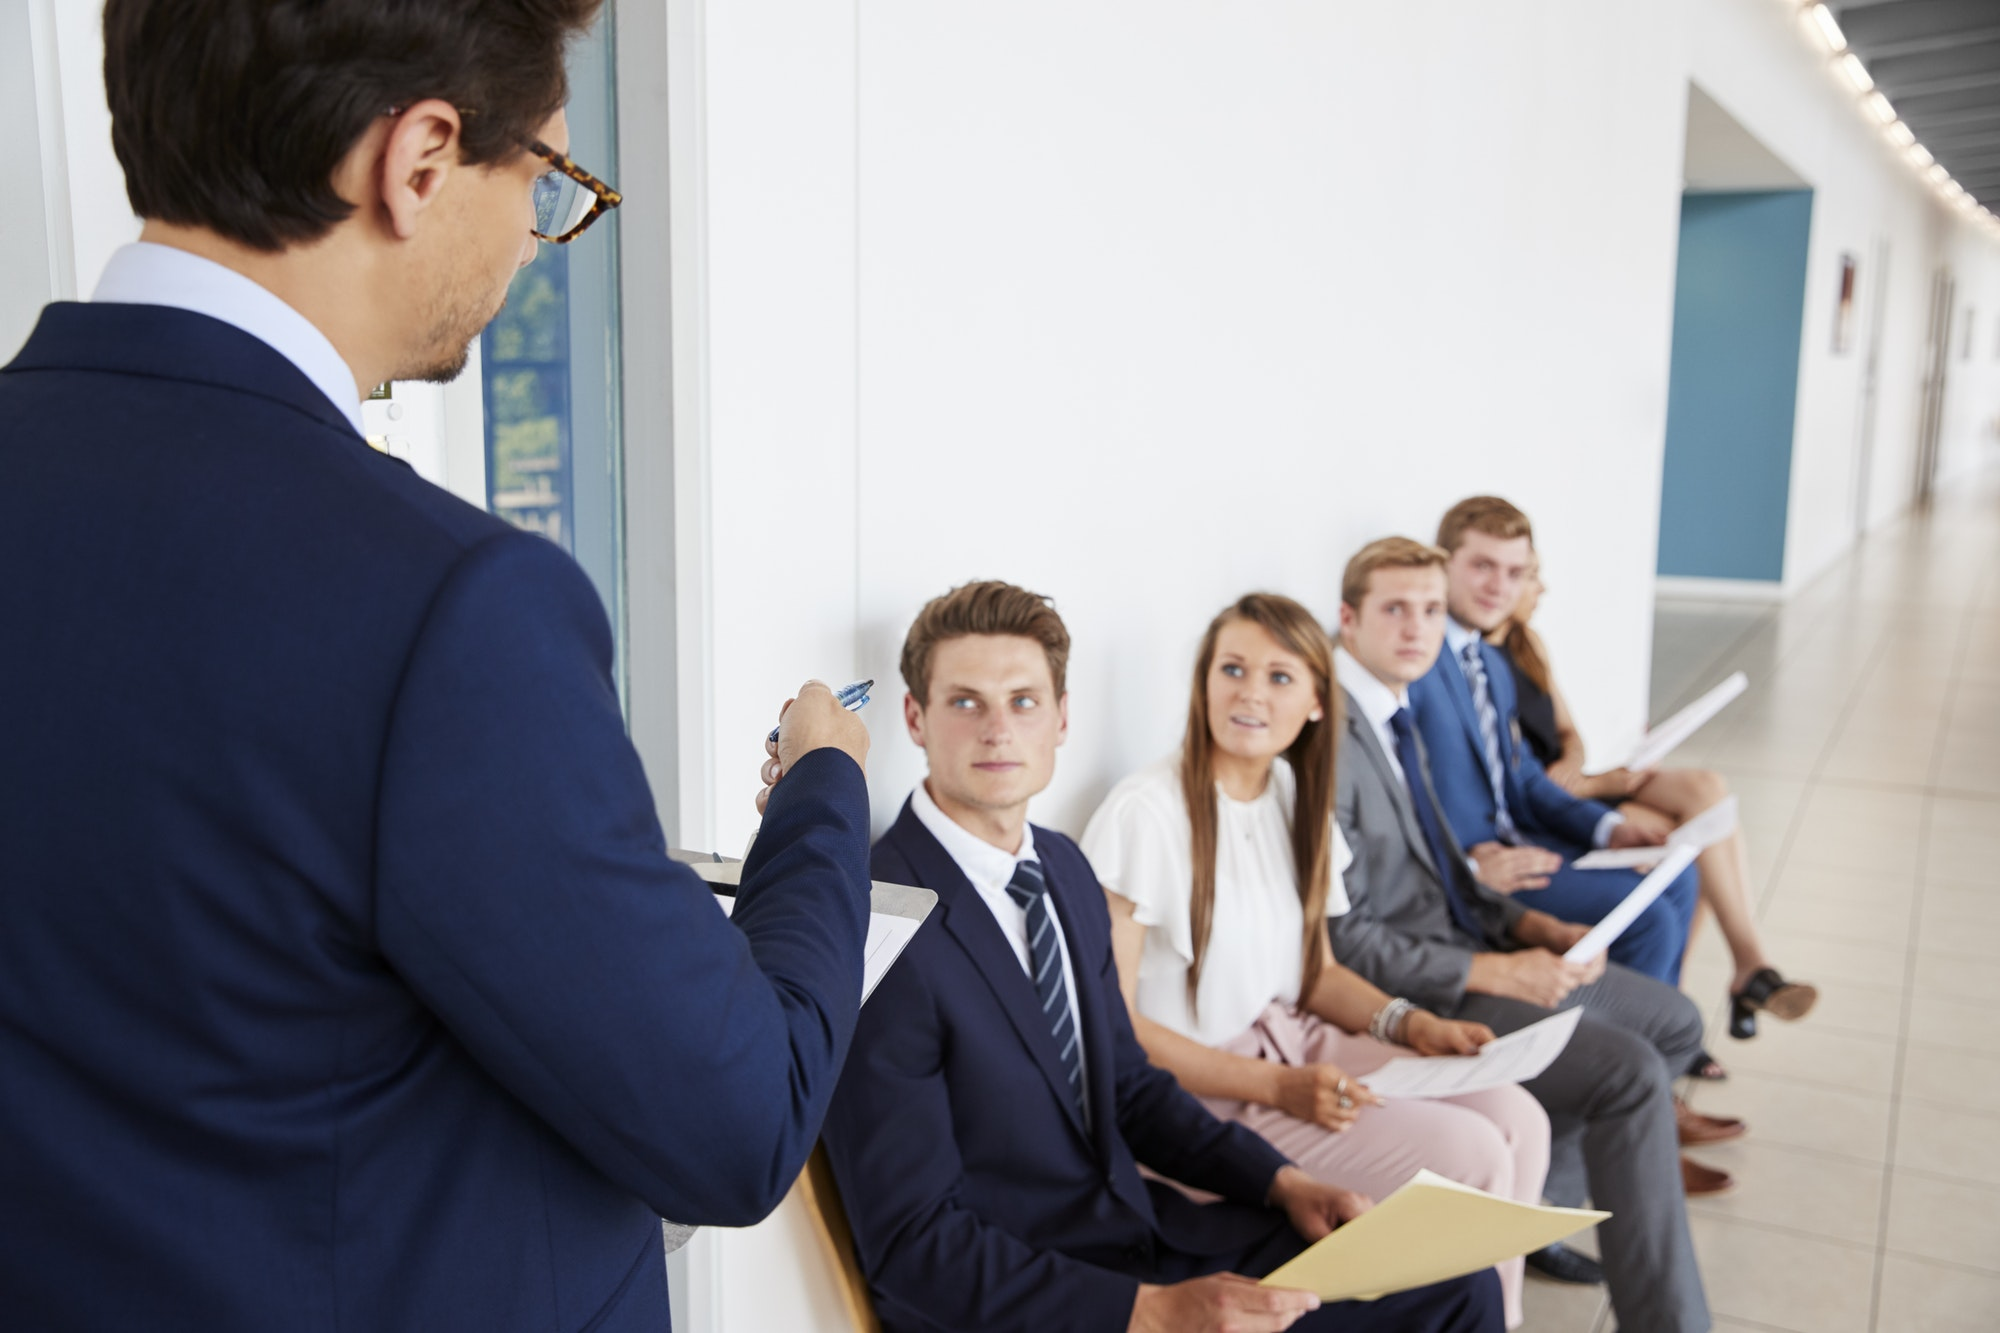 Recruiter addressing job candidates waiting for interviews